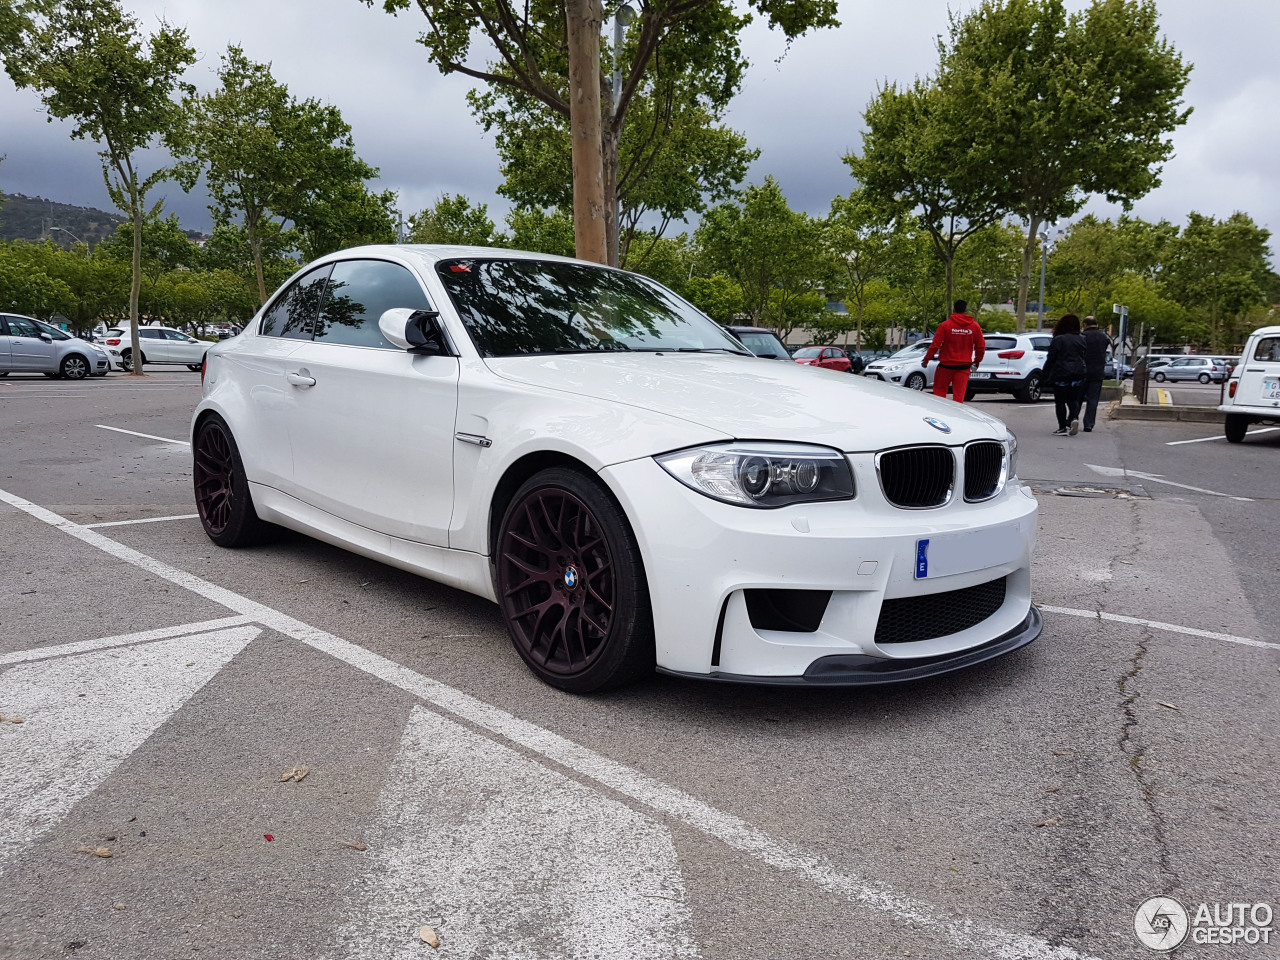 bmw 1 series m coup 5 may 2017 autogespot. Black Bedroom Furniture Sets. Home Design Ideas